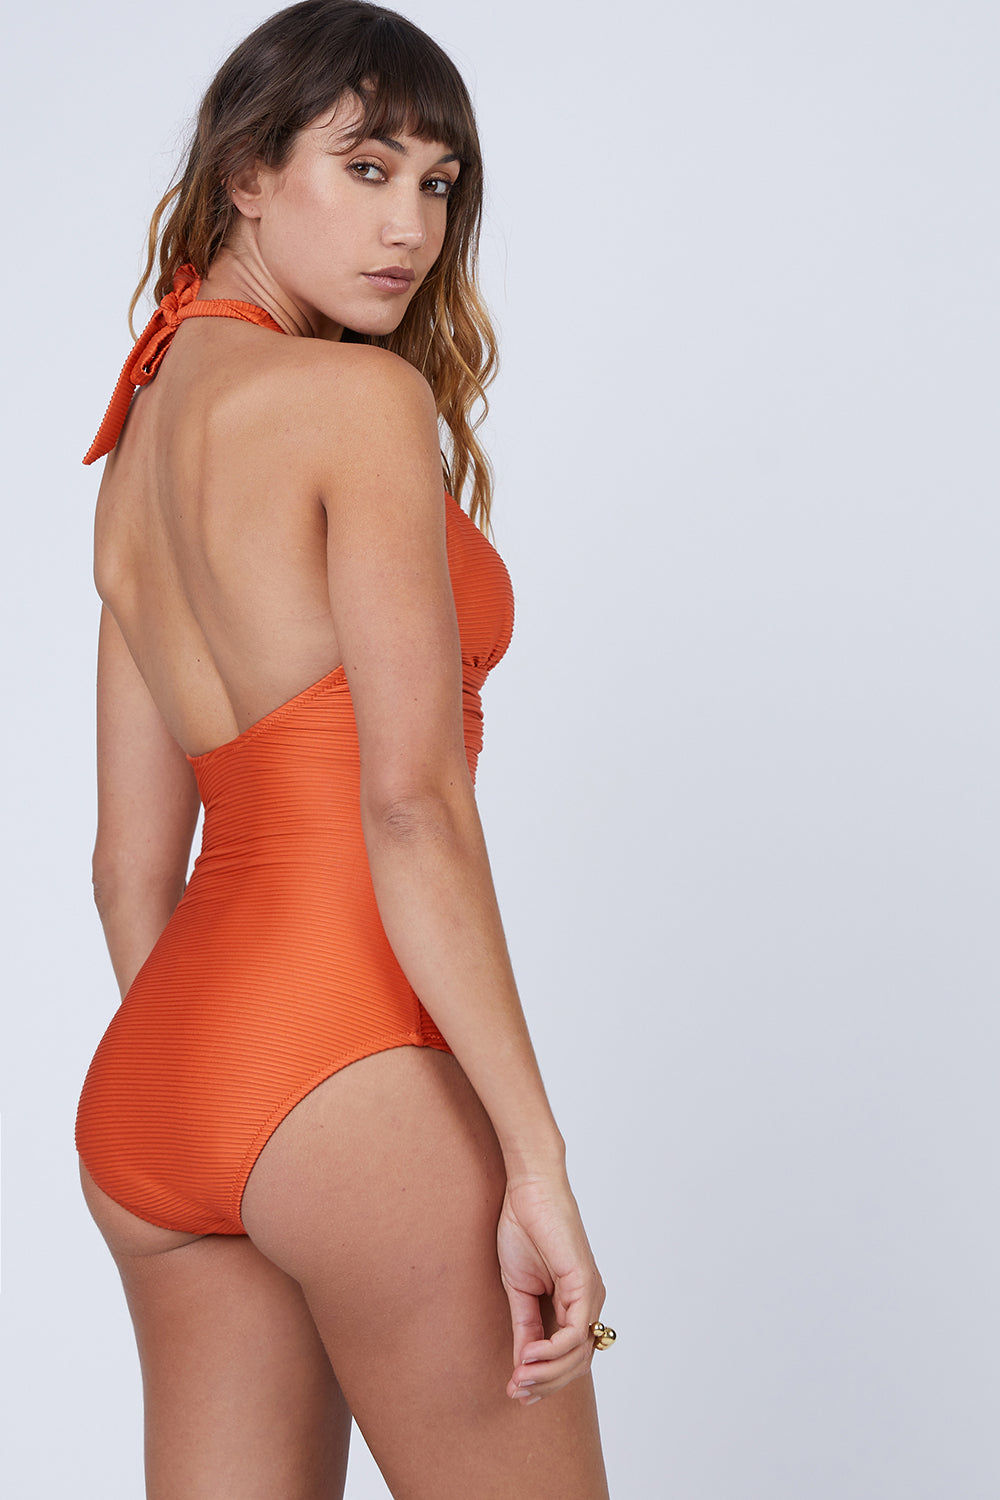 HEIDI KLEIN Ribbed Halter V Bar One Piece Swimsuit - Orange One Piece | Orange| Heidi Klein V Bar One Piece Swimsuit - Orange. Features:  Removable internal foam cups give good shaping with internal underband for further support. There is soft boning in the side seam and light removable padding at the bust. The Heidi Klein bespoke V Bar hardware at the centre front subtly draws attention to the bust. Neckline, underarm, back and legs have hidden elastic for secure fit and halterneck ties allow for adjustable fit. Front View